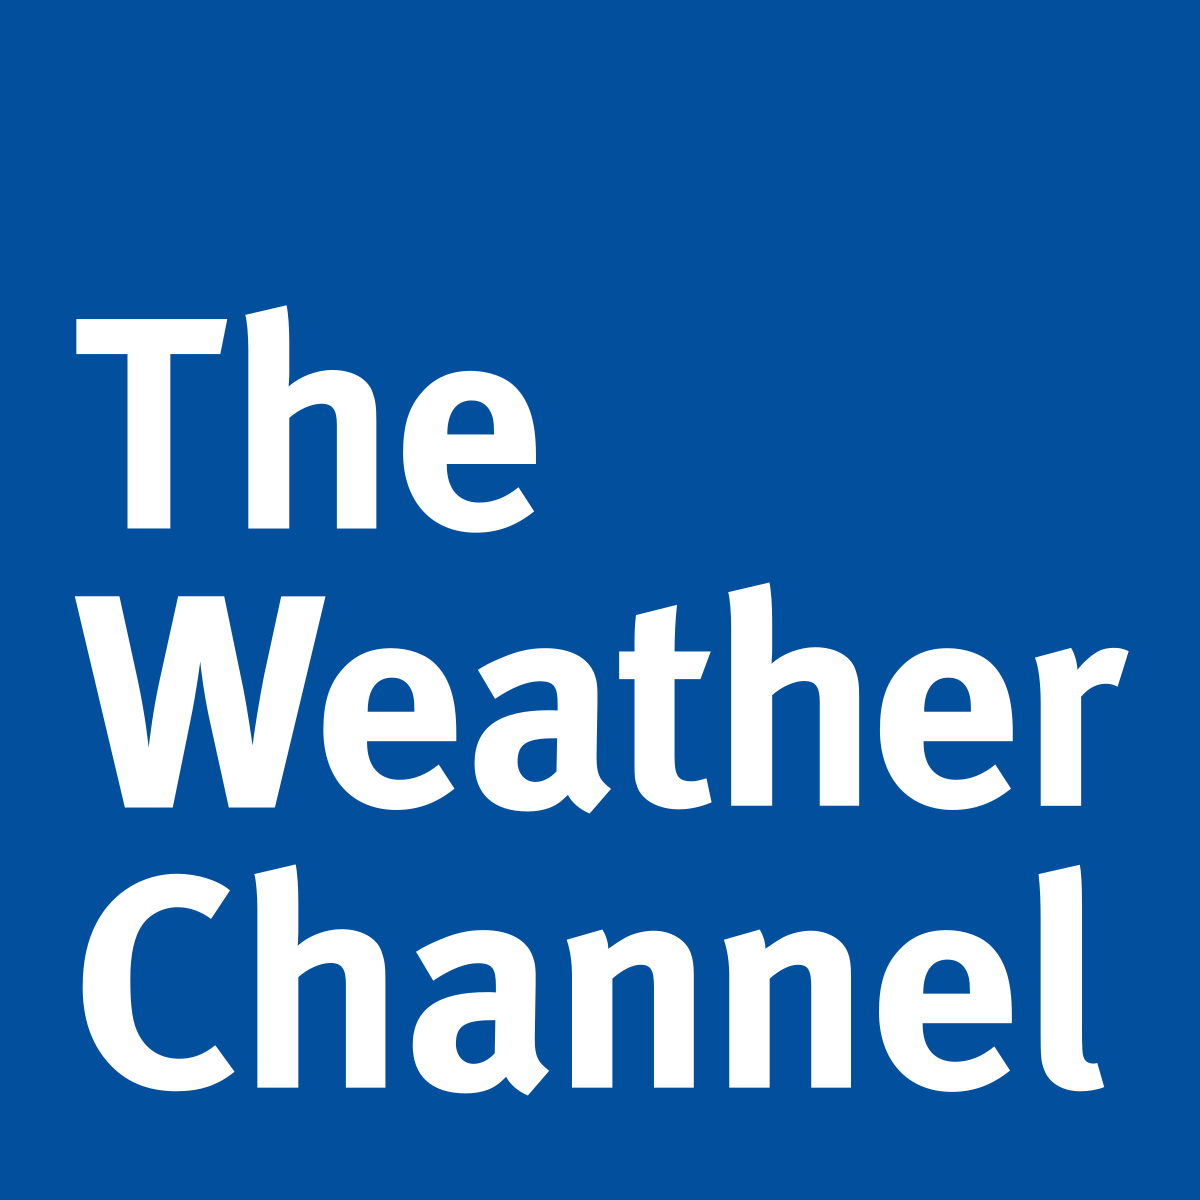 The weather channel written on blue background